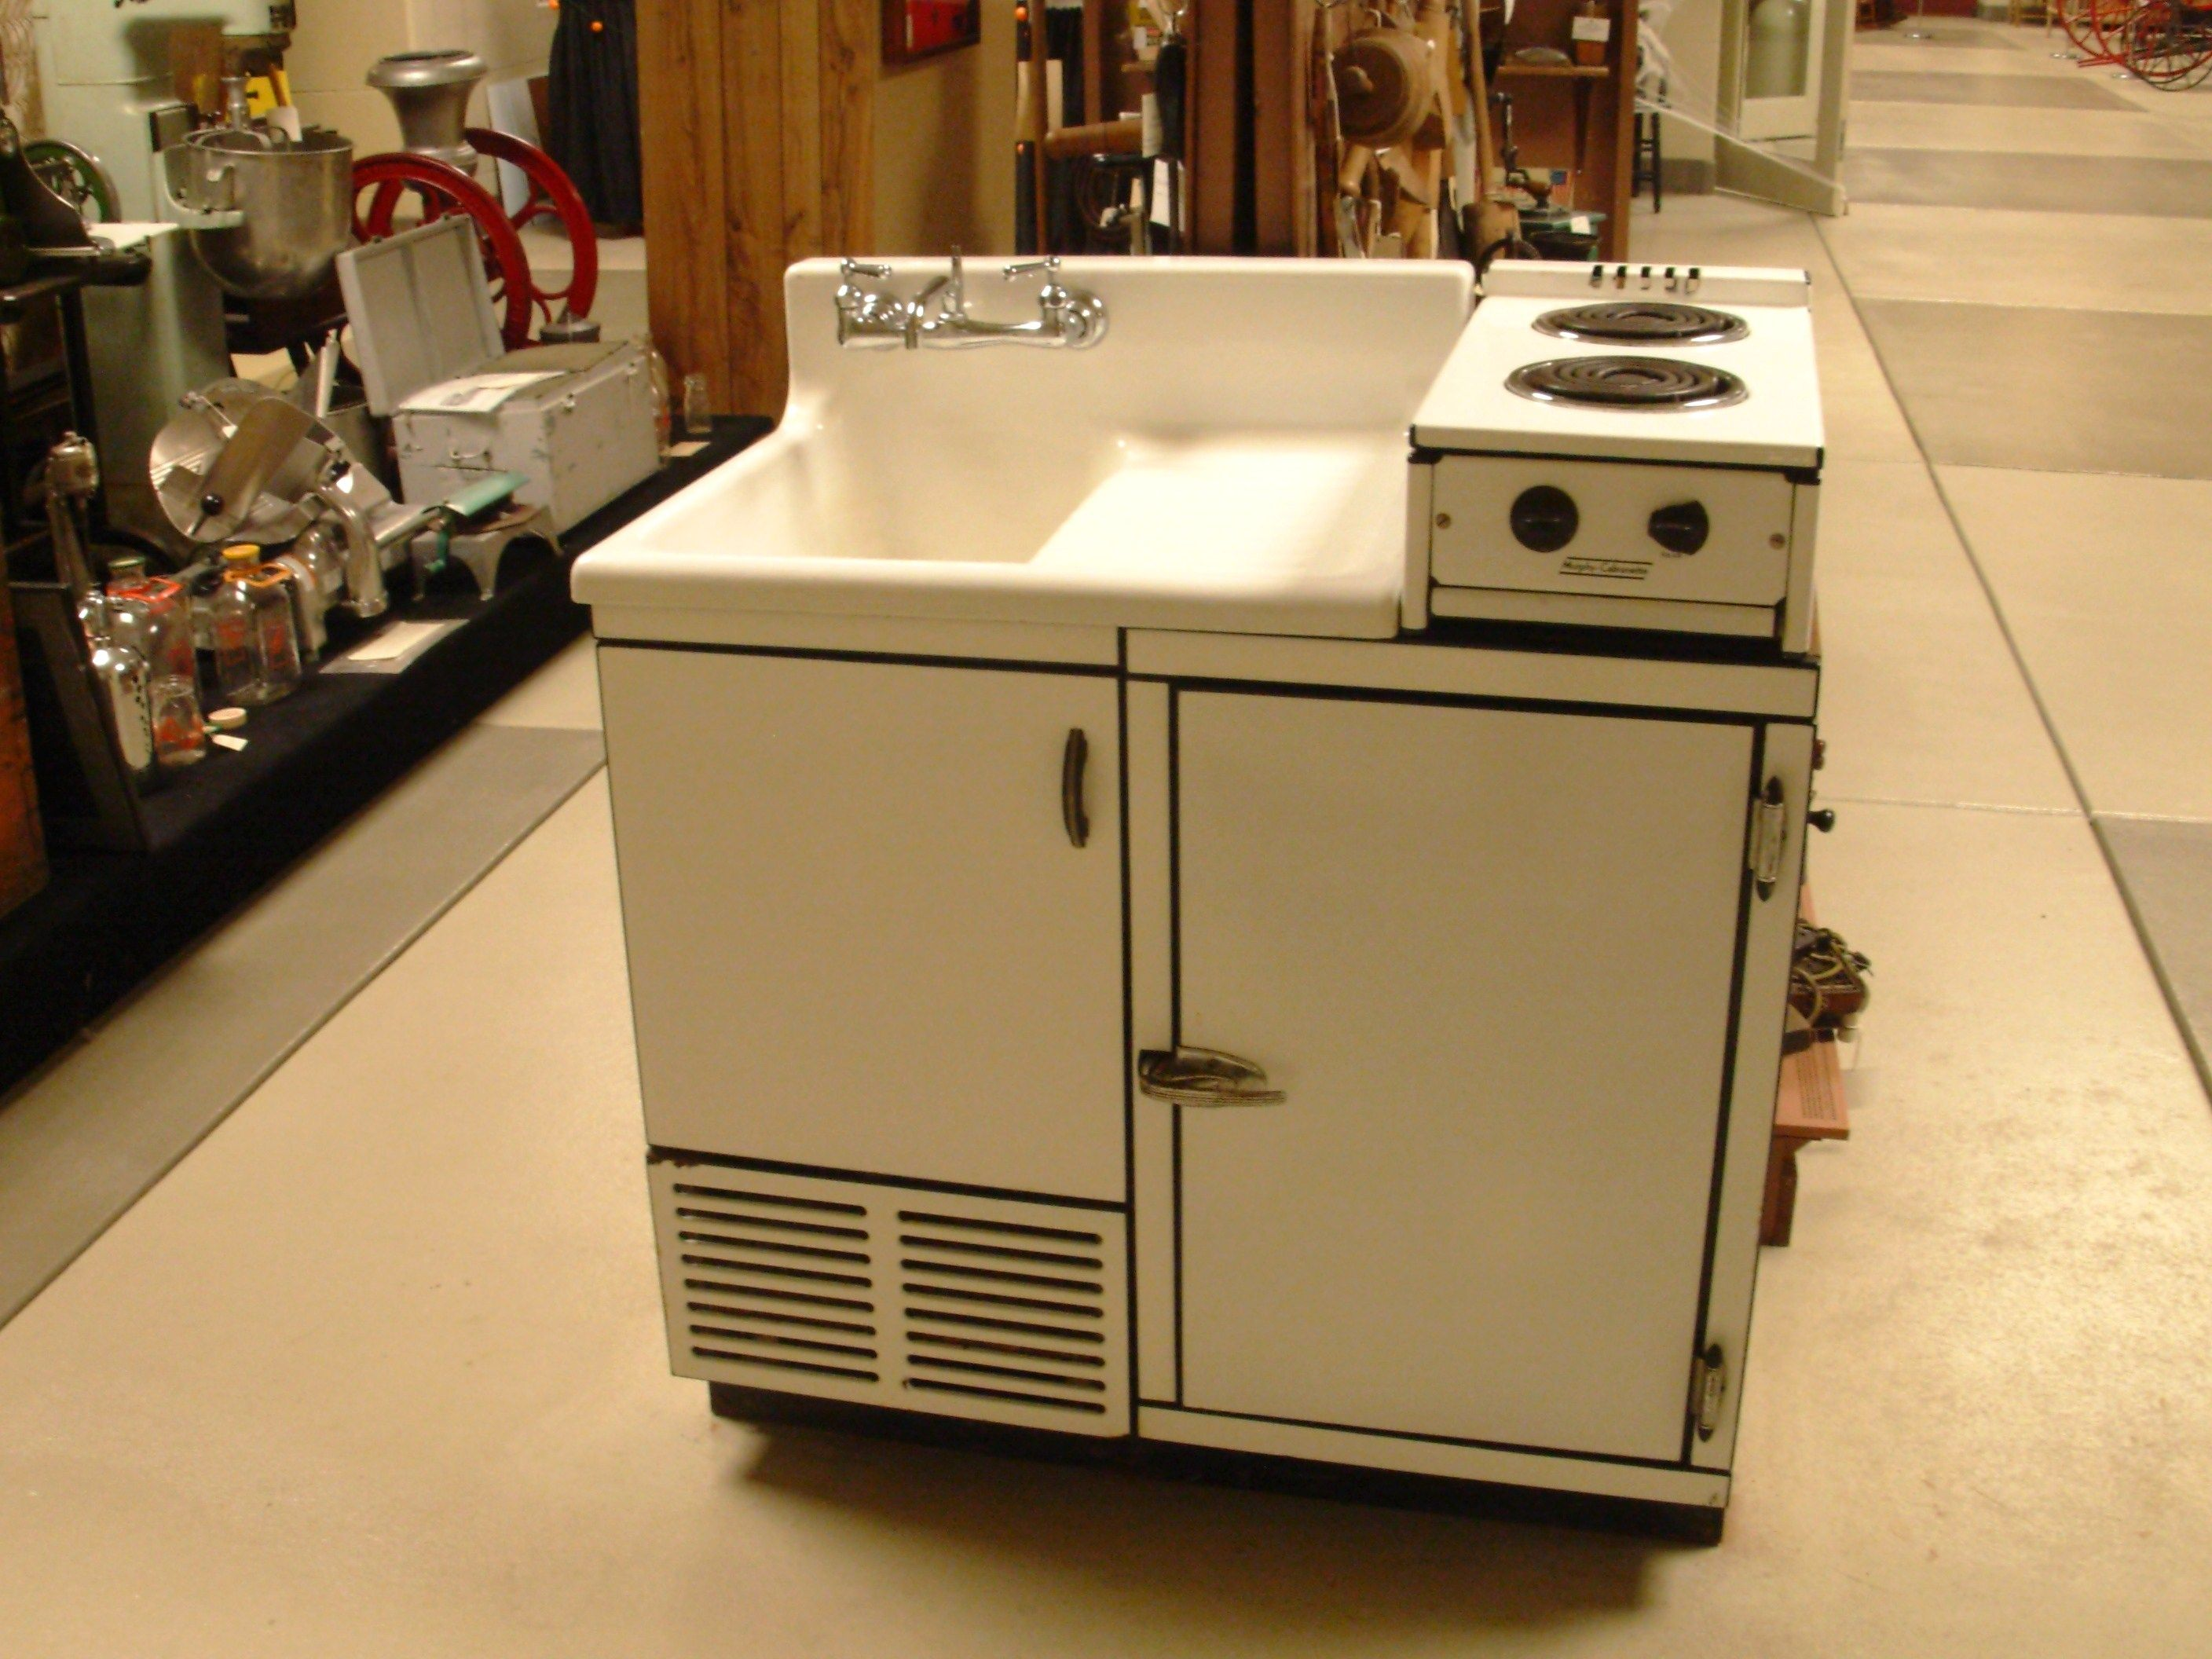 Dwyer SinkStove. I Love This Piece   It Has A Sink, Icebox, And 2 Burner  Electric Stove Top Combined Into One Tiny Unit.